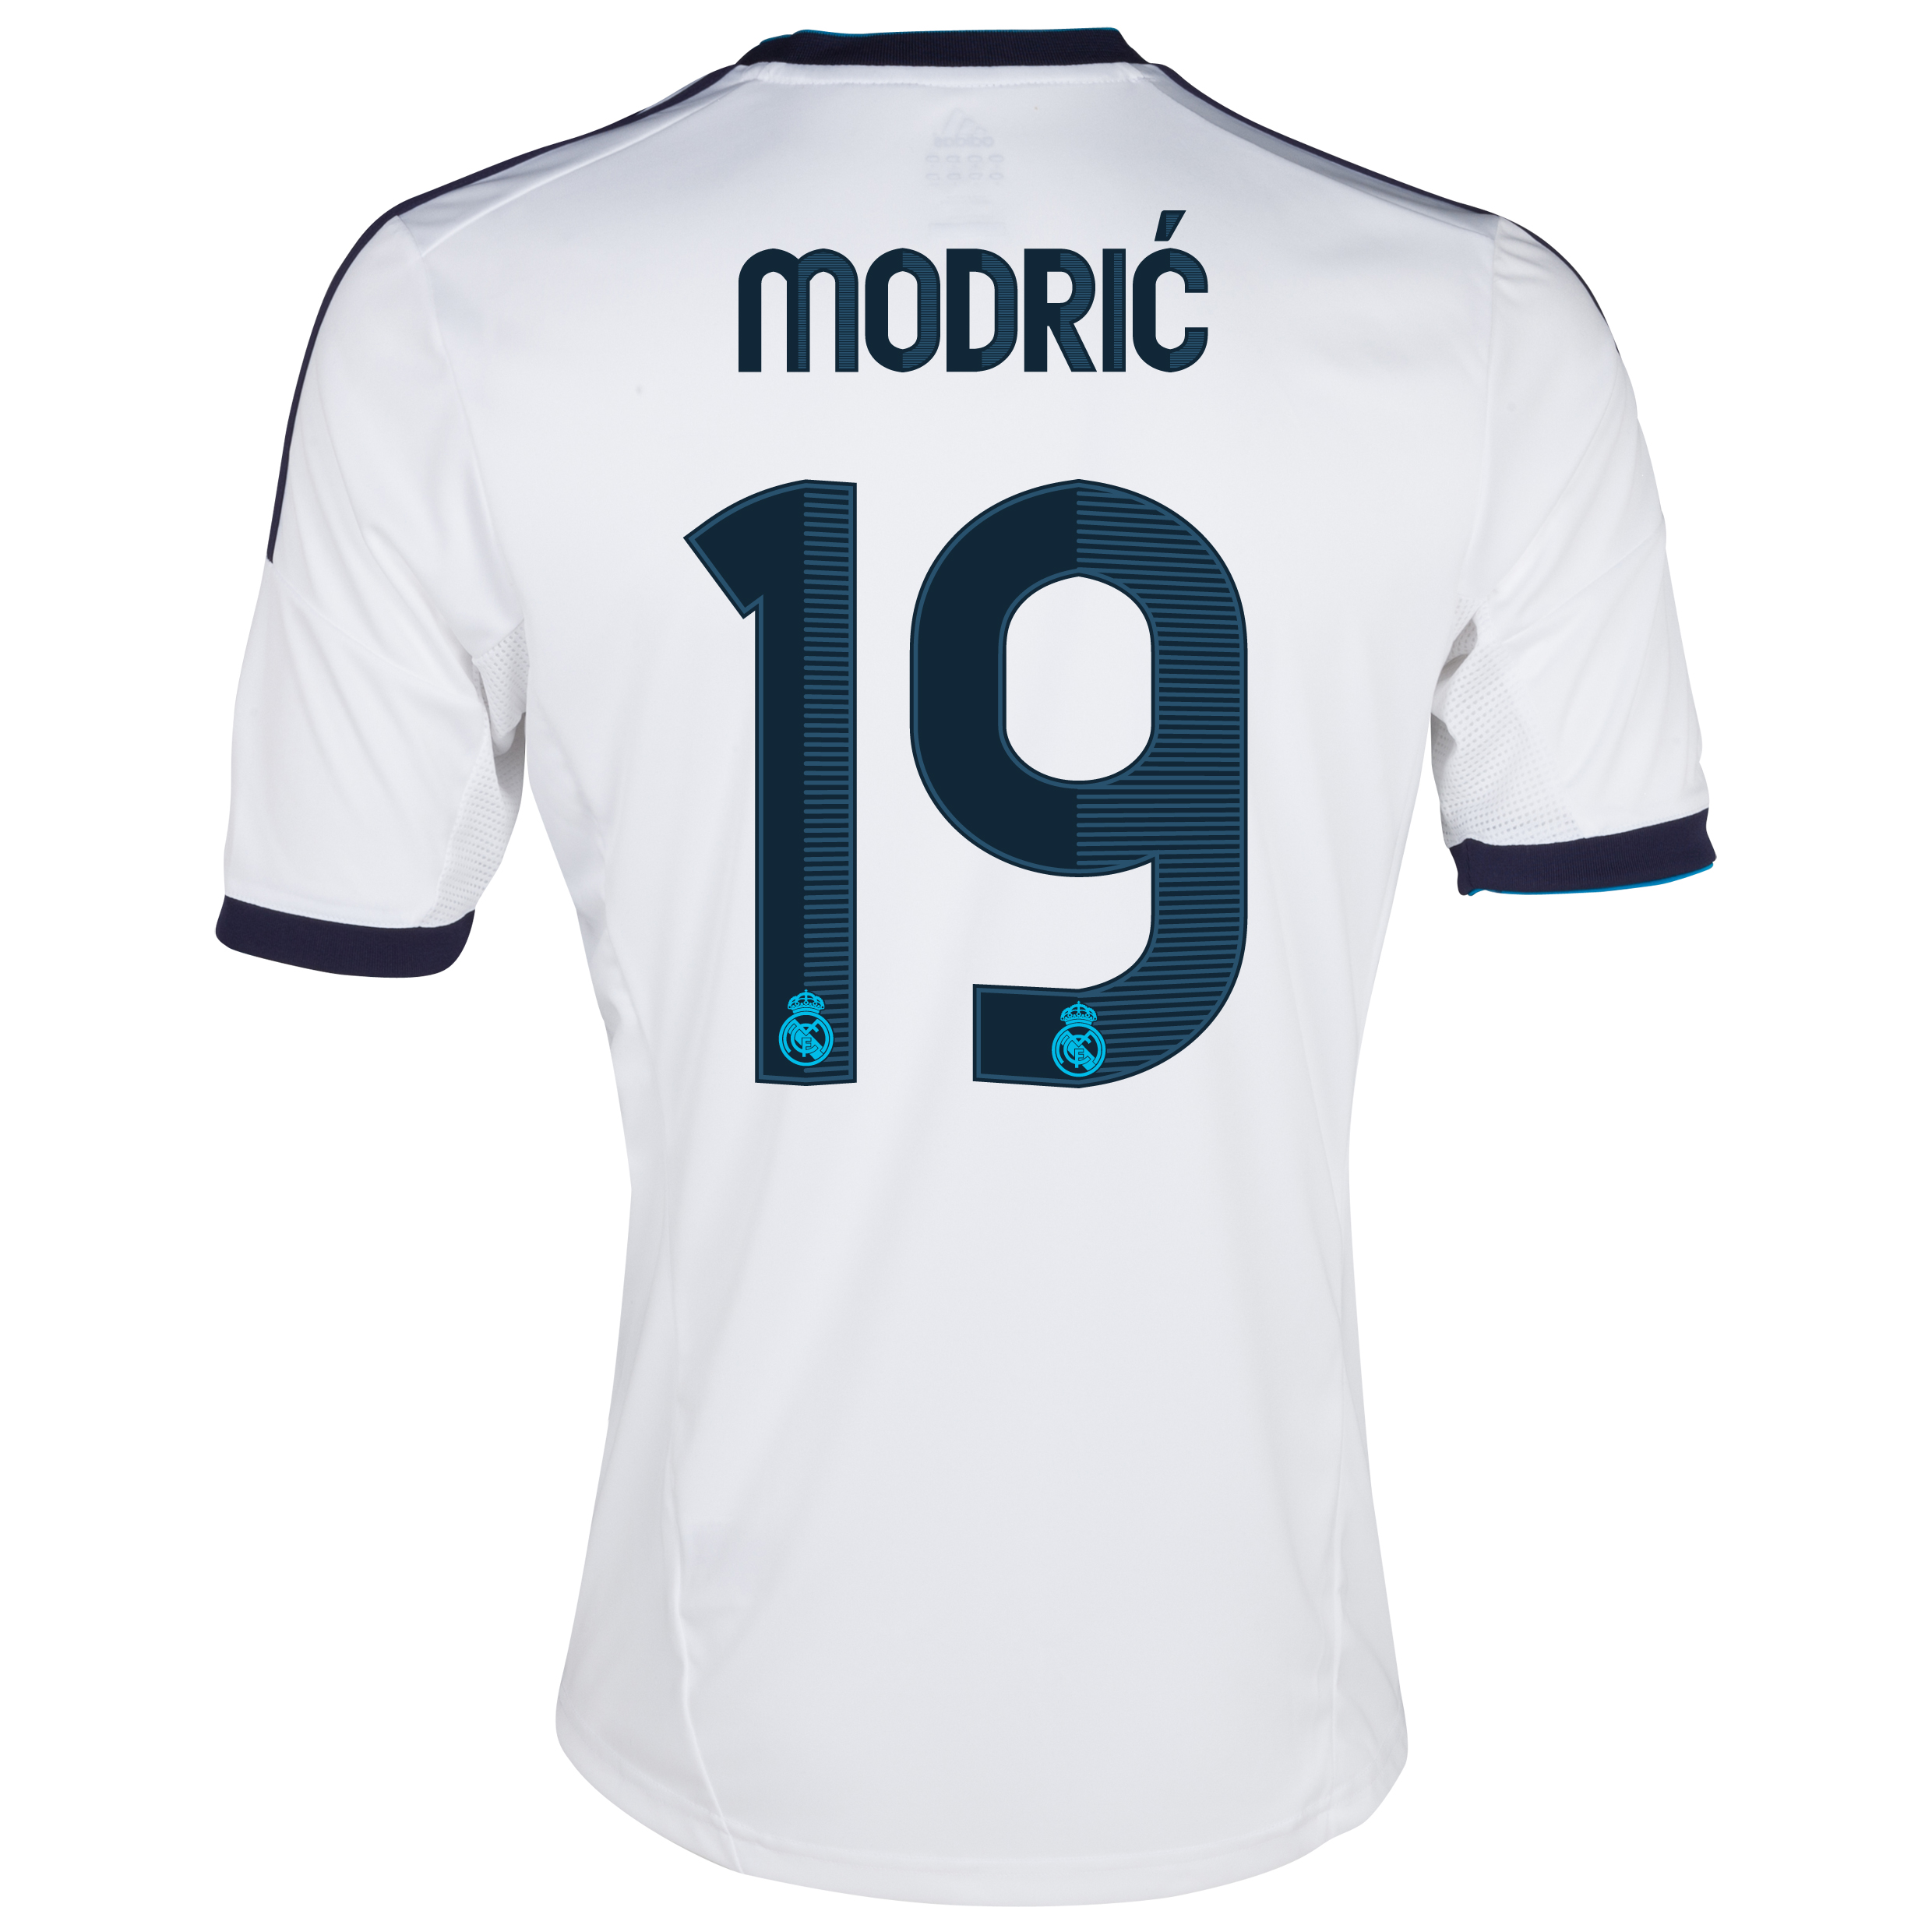 Camiseta 1 Equipacin del Real Madrid 2012/13 con Modric N19